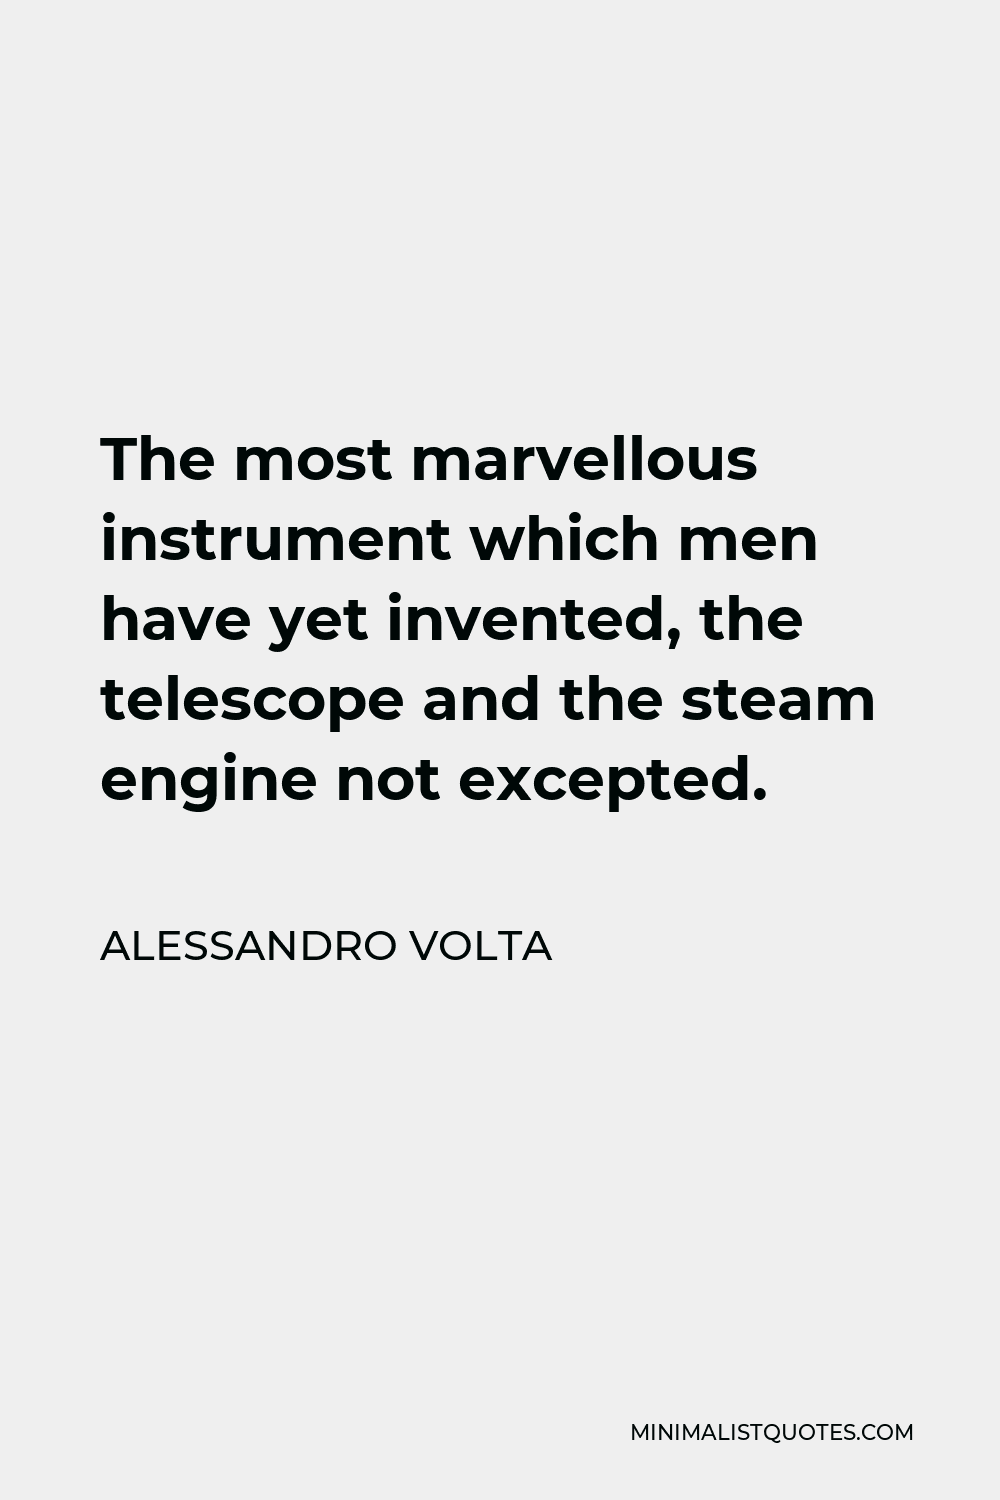 Alessandro Volta Quote - The most marvellous instrument which men have yet invented, the telescope and the steam engine not excepted.